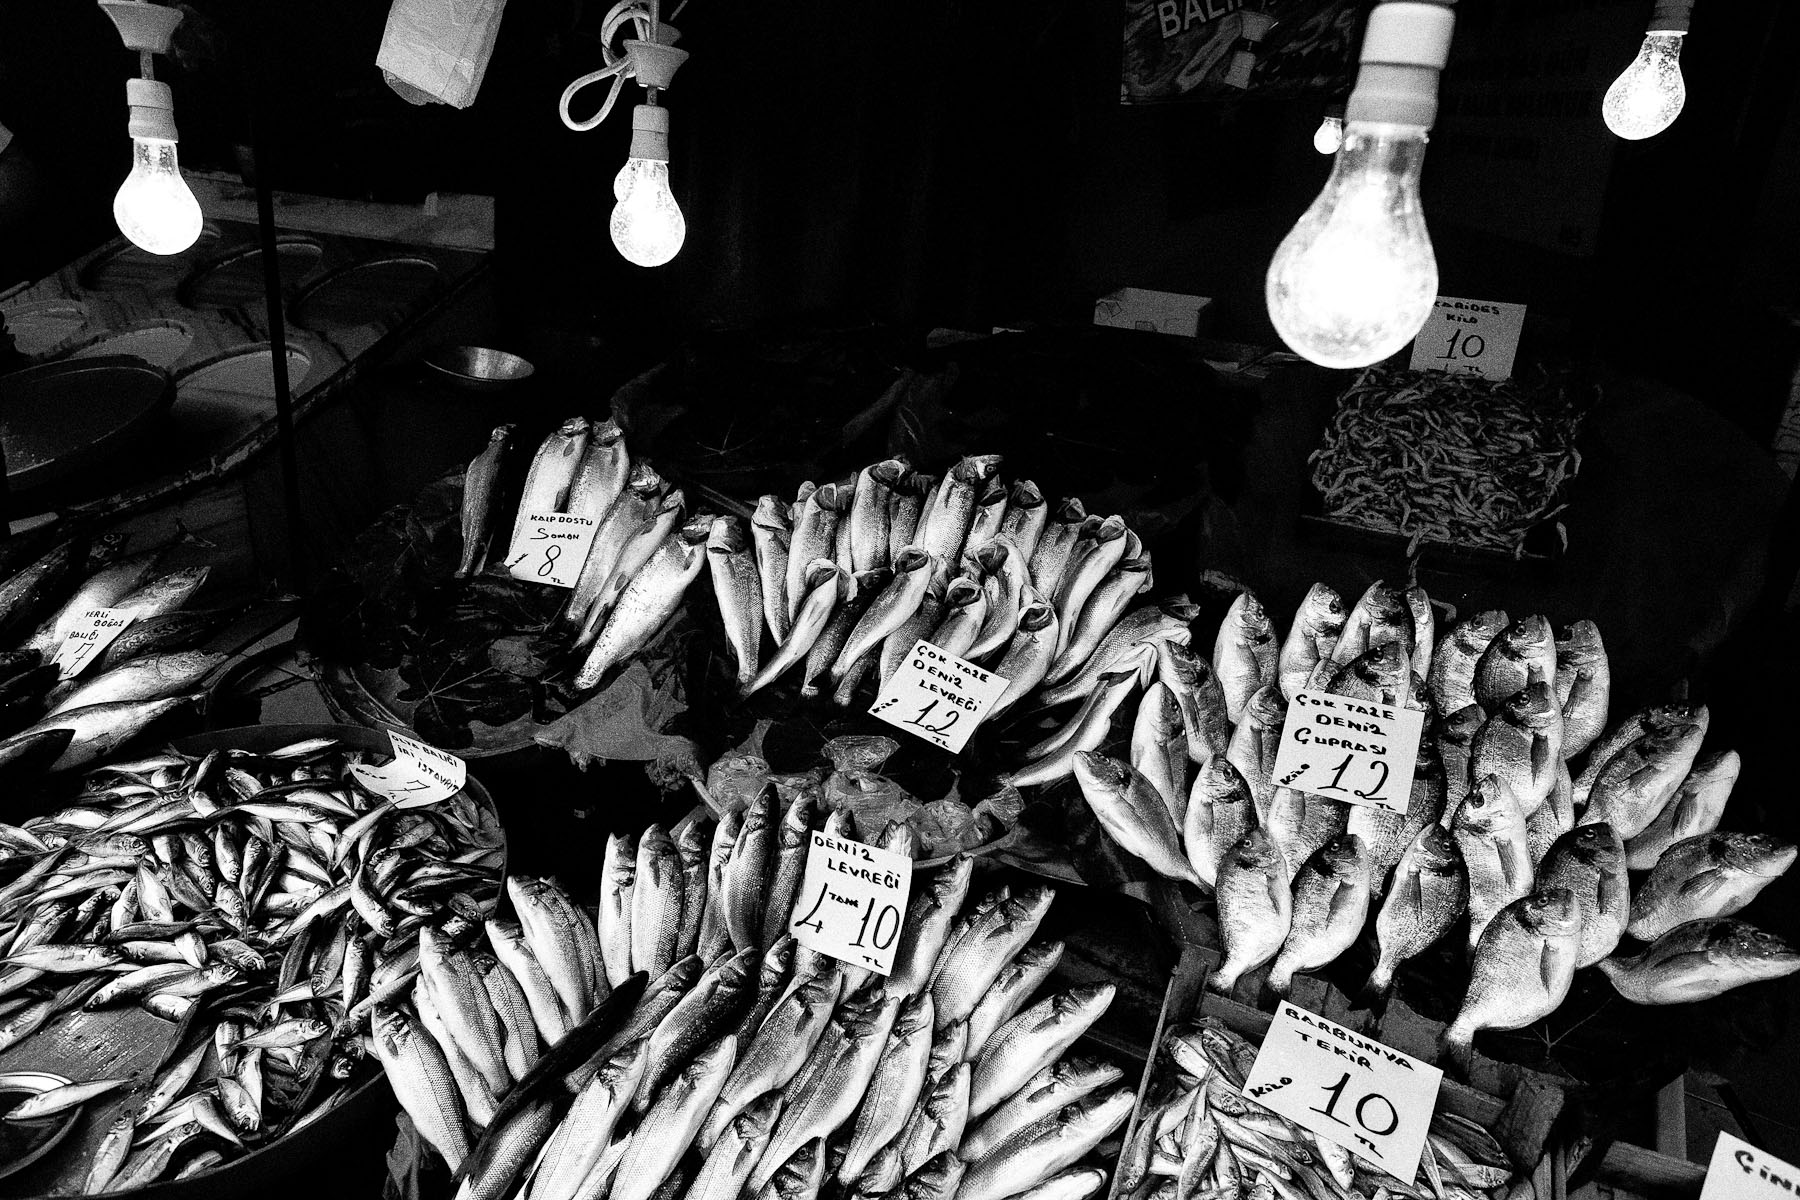 A selection of fish rests on a stand in the Karakoy fish market, the popular fish market in the heart of Istanbul, on 24th June 2010. Most of the small fish here come from local fishermen like Adem, Cevat and Cinar, fishing long nights on the Marmara sea.